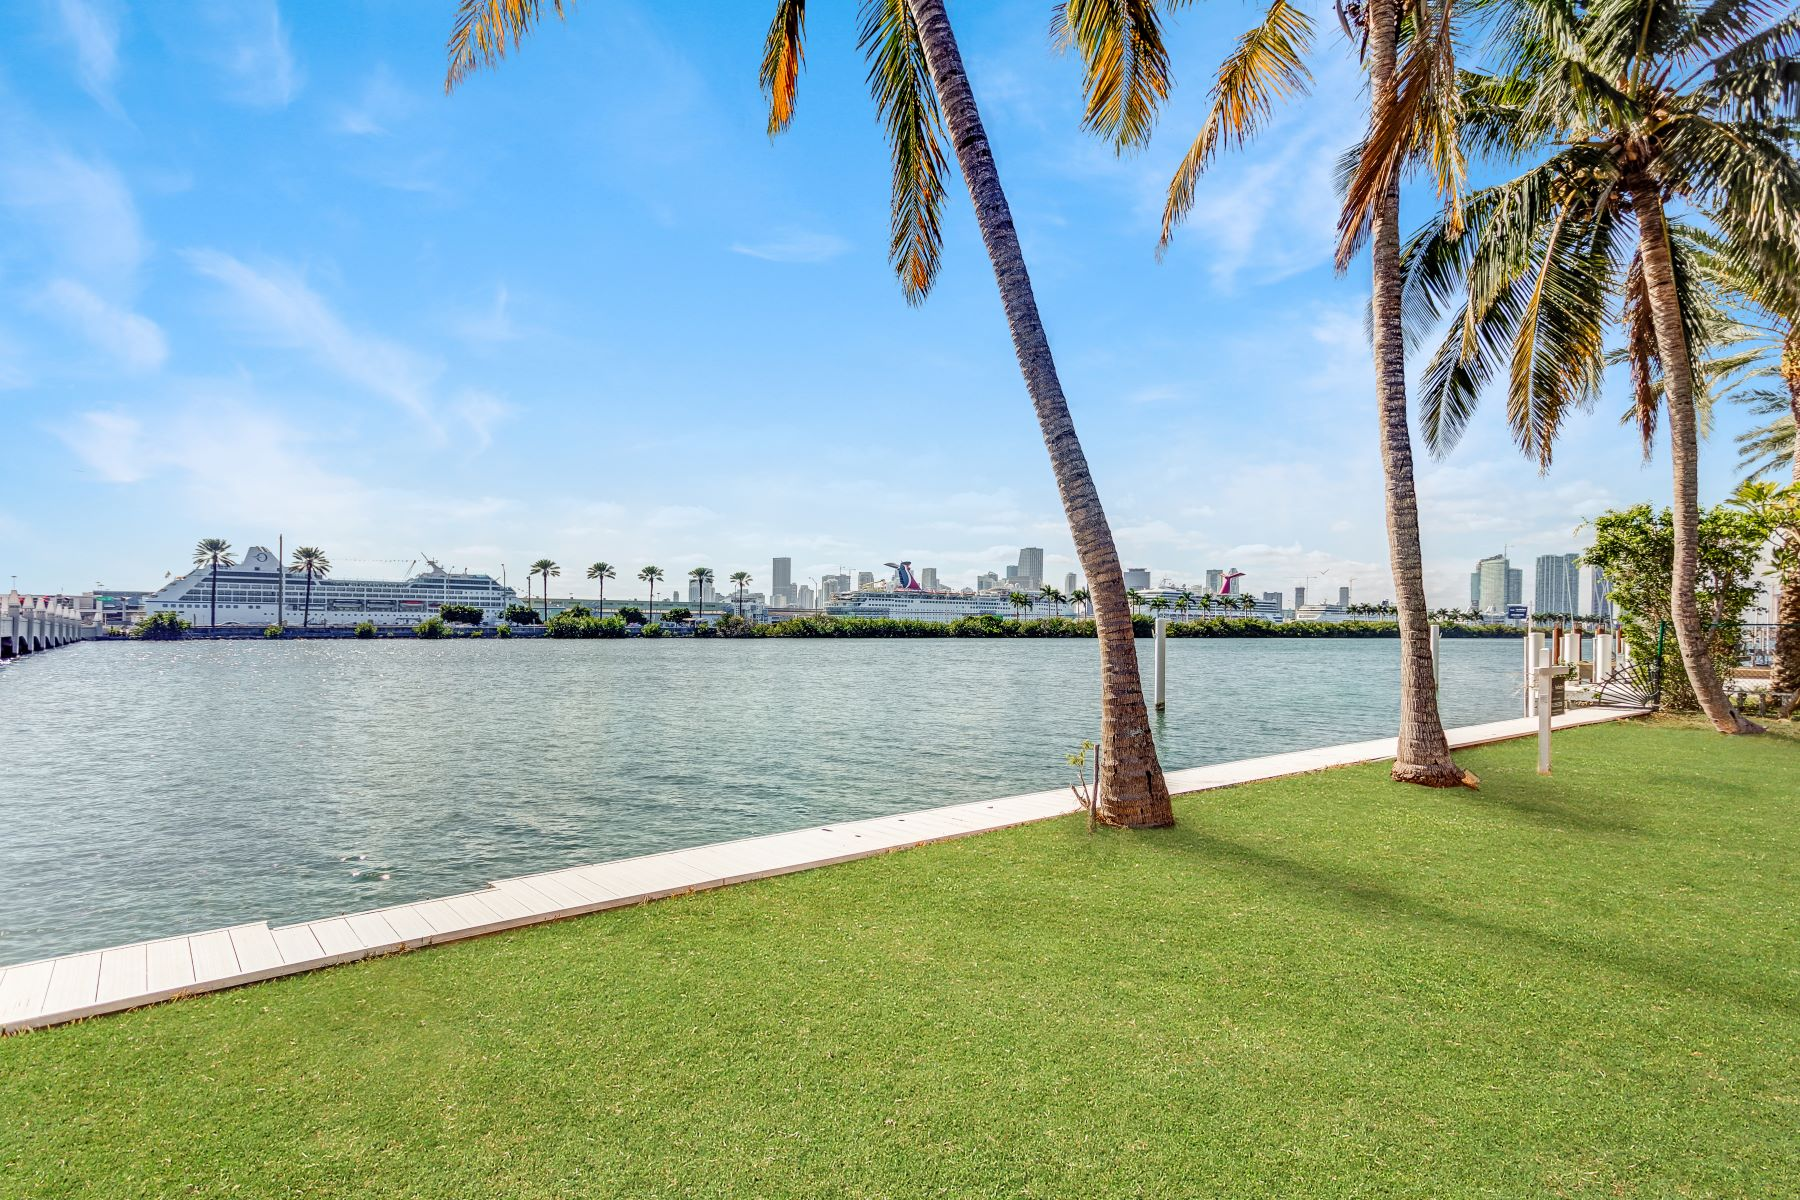 Land for Active at 158 Palm Ave Miami Beach, Florida 33139 United States